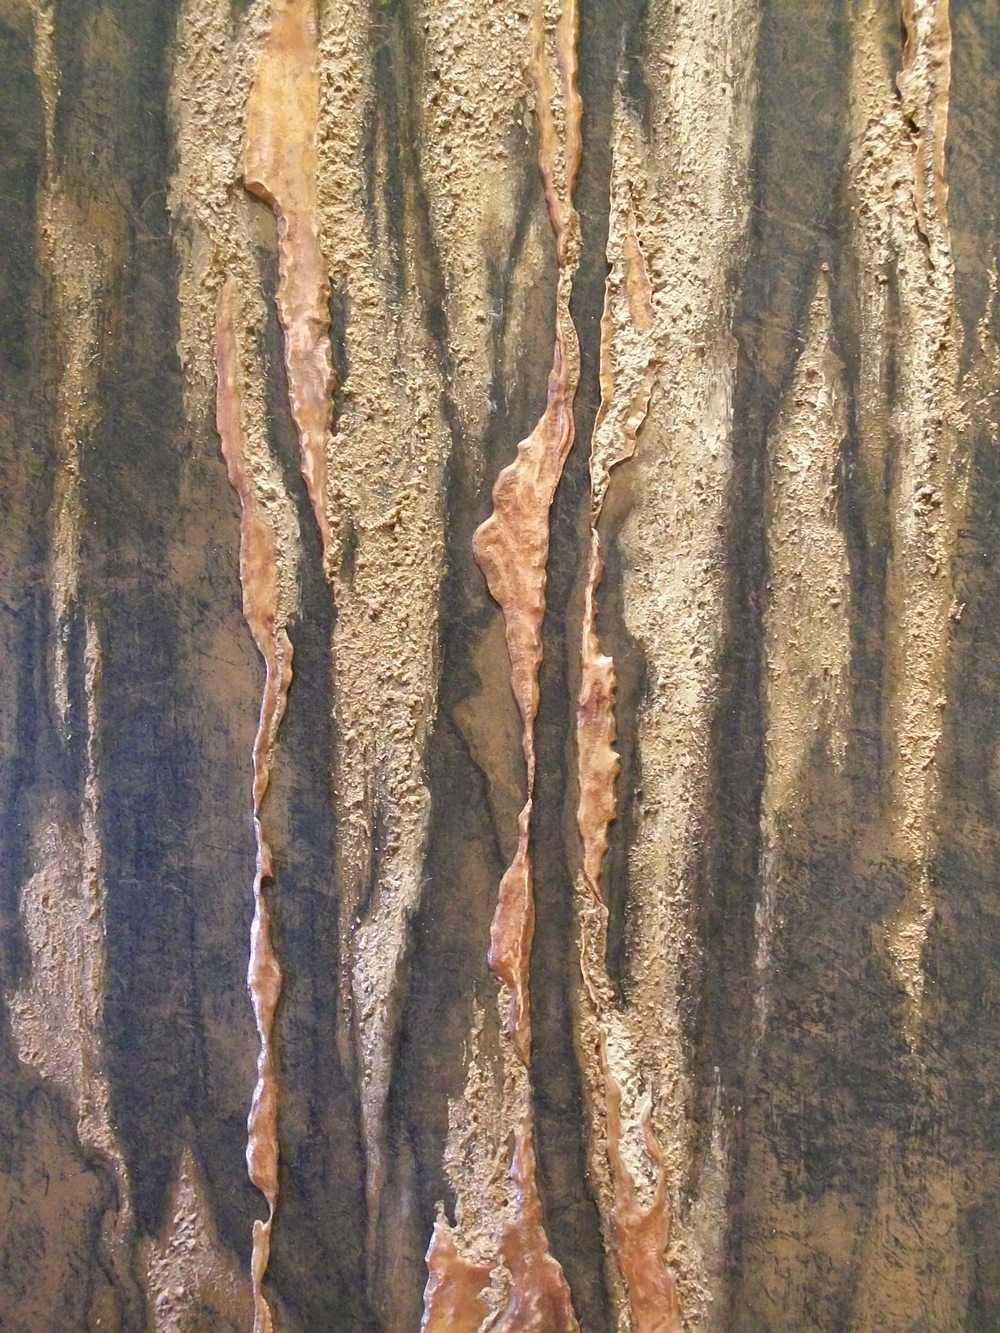 DETAIL b,  YARA DIPTYCH ,  Yara 1 , copper repoussé elements, mineral particles and acrylic on archival wood panel,